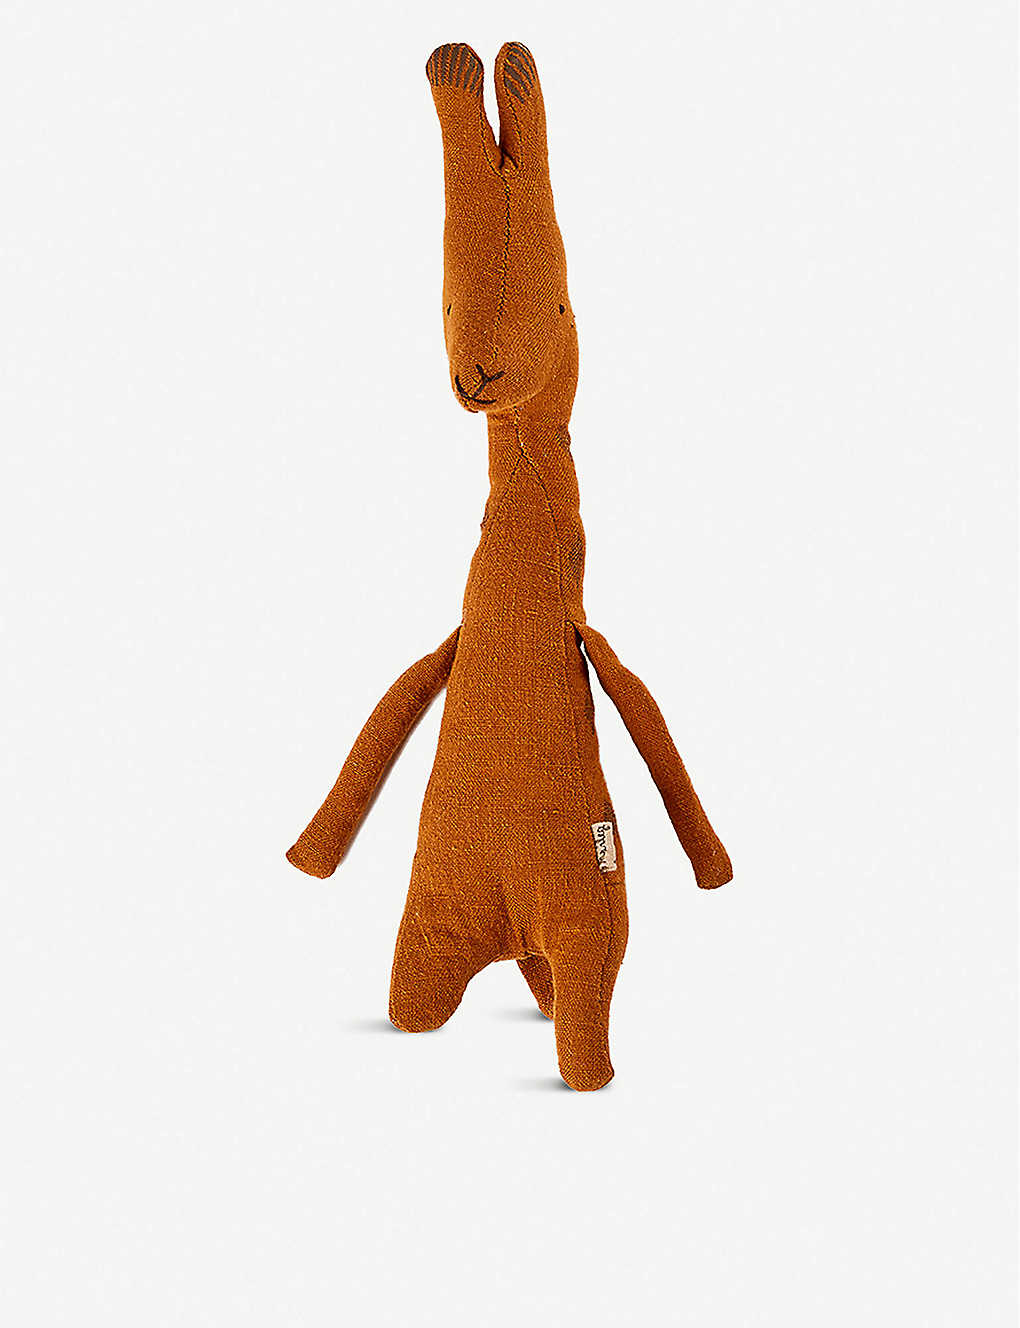 THE CONRAN SHOP: Maileg Mini Giraffe linen soft toy 14cm